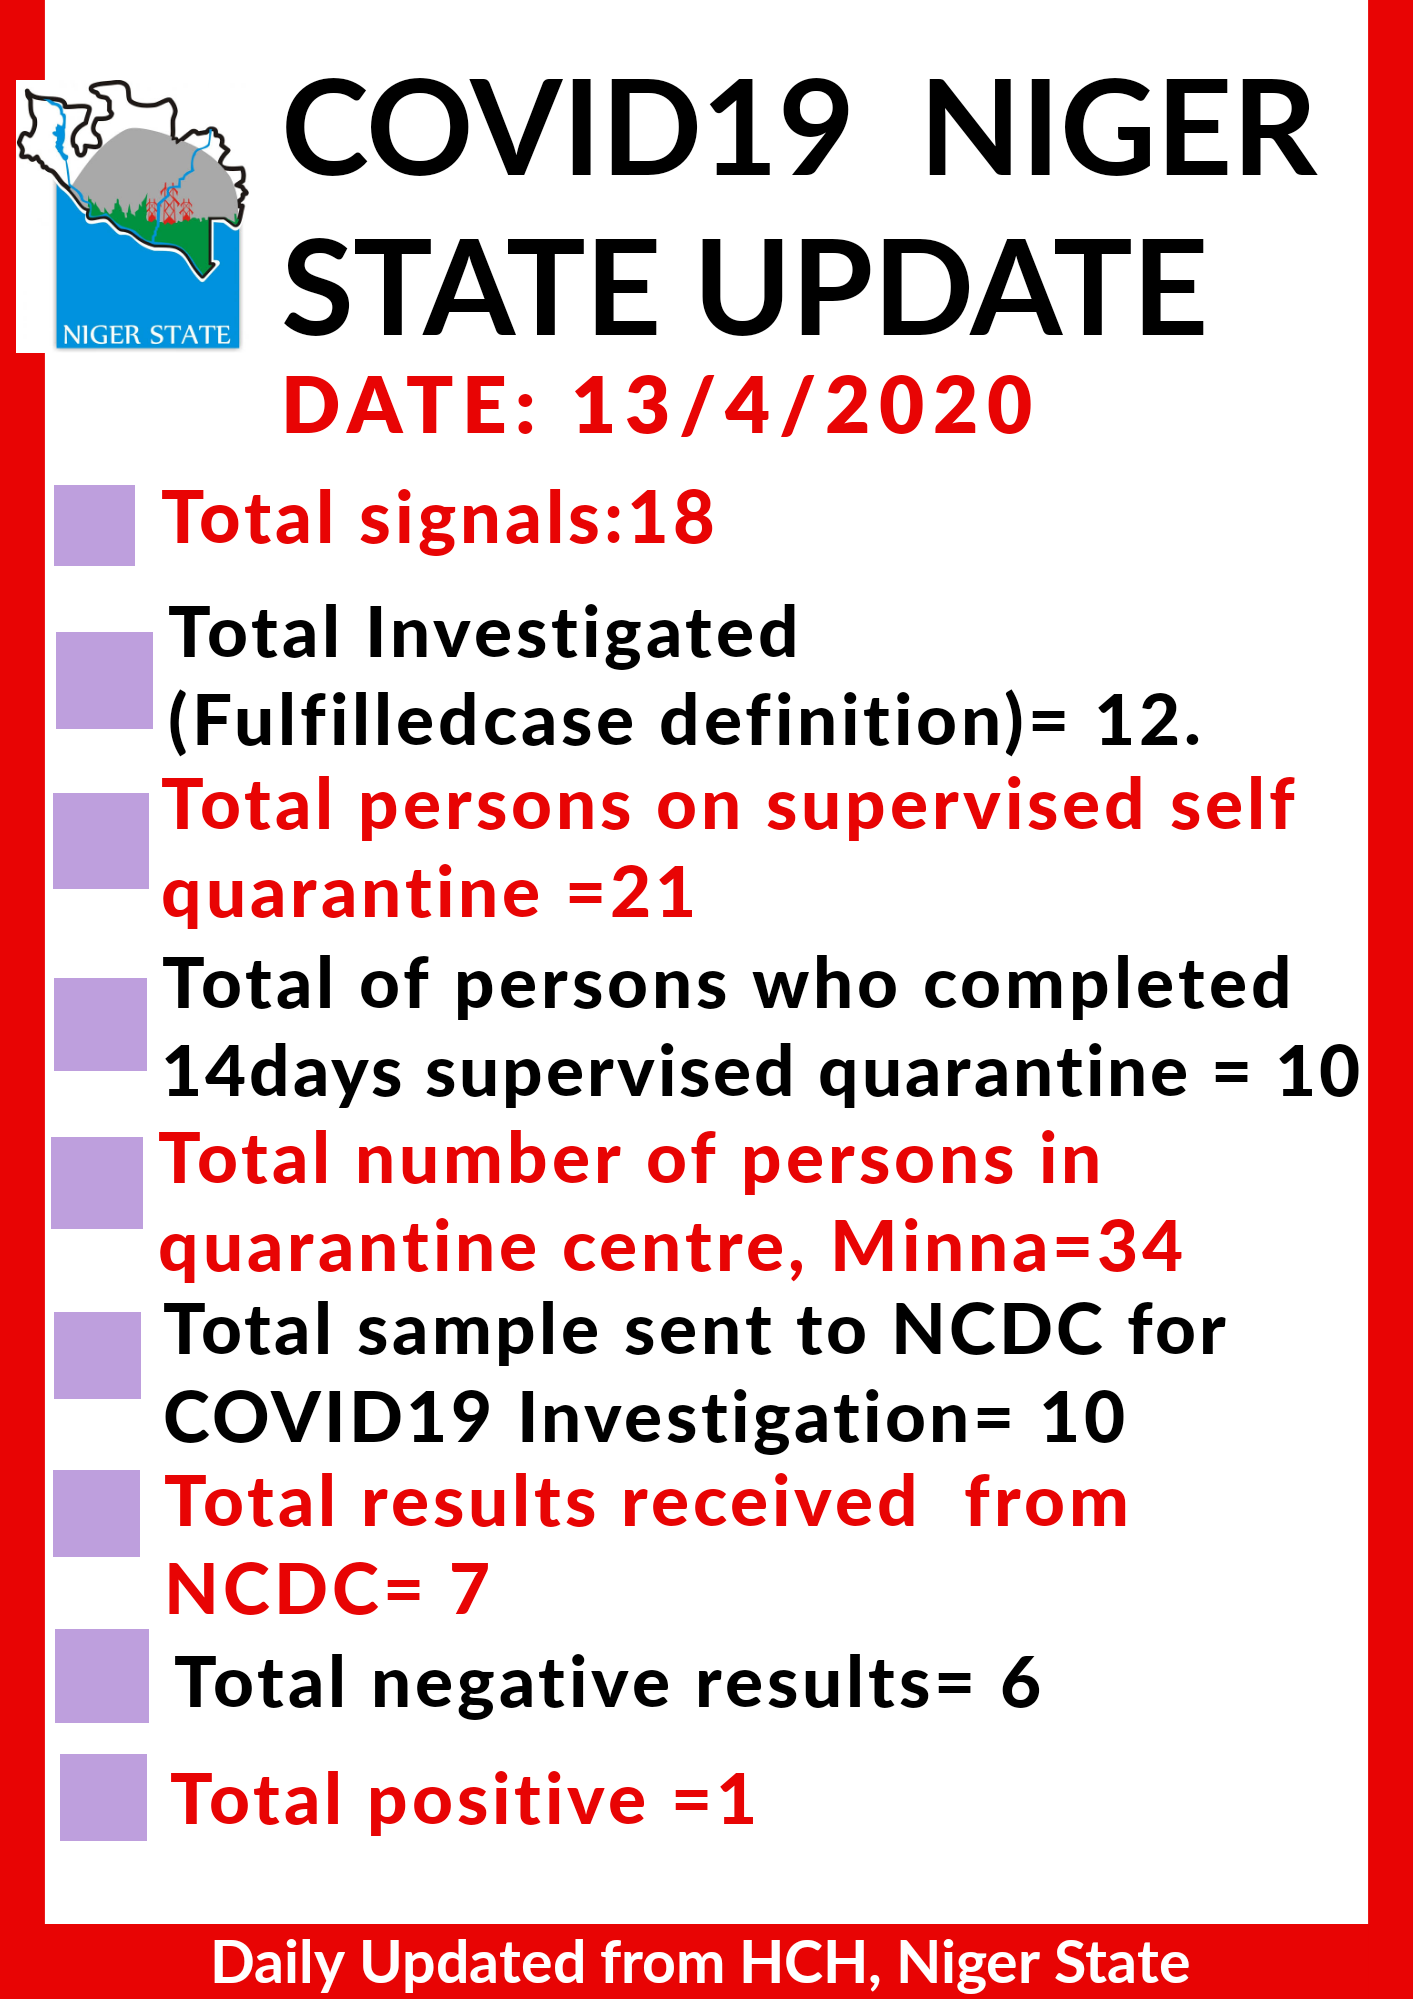 COVID19 NIGER STATE UPDATE AS AT 13/4/2020